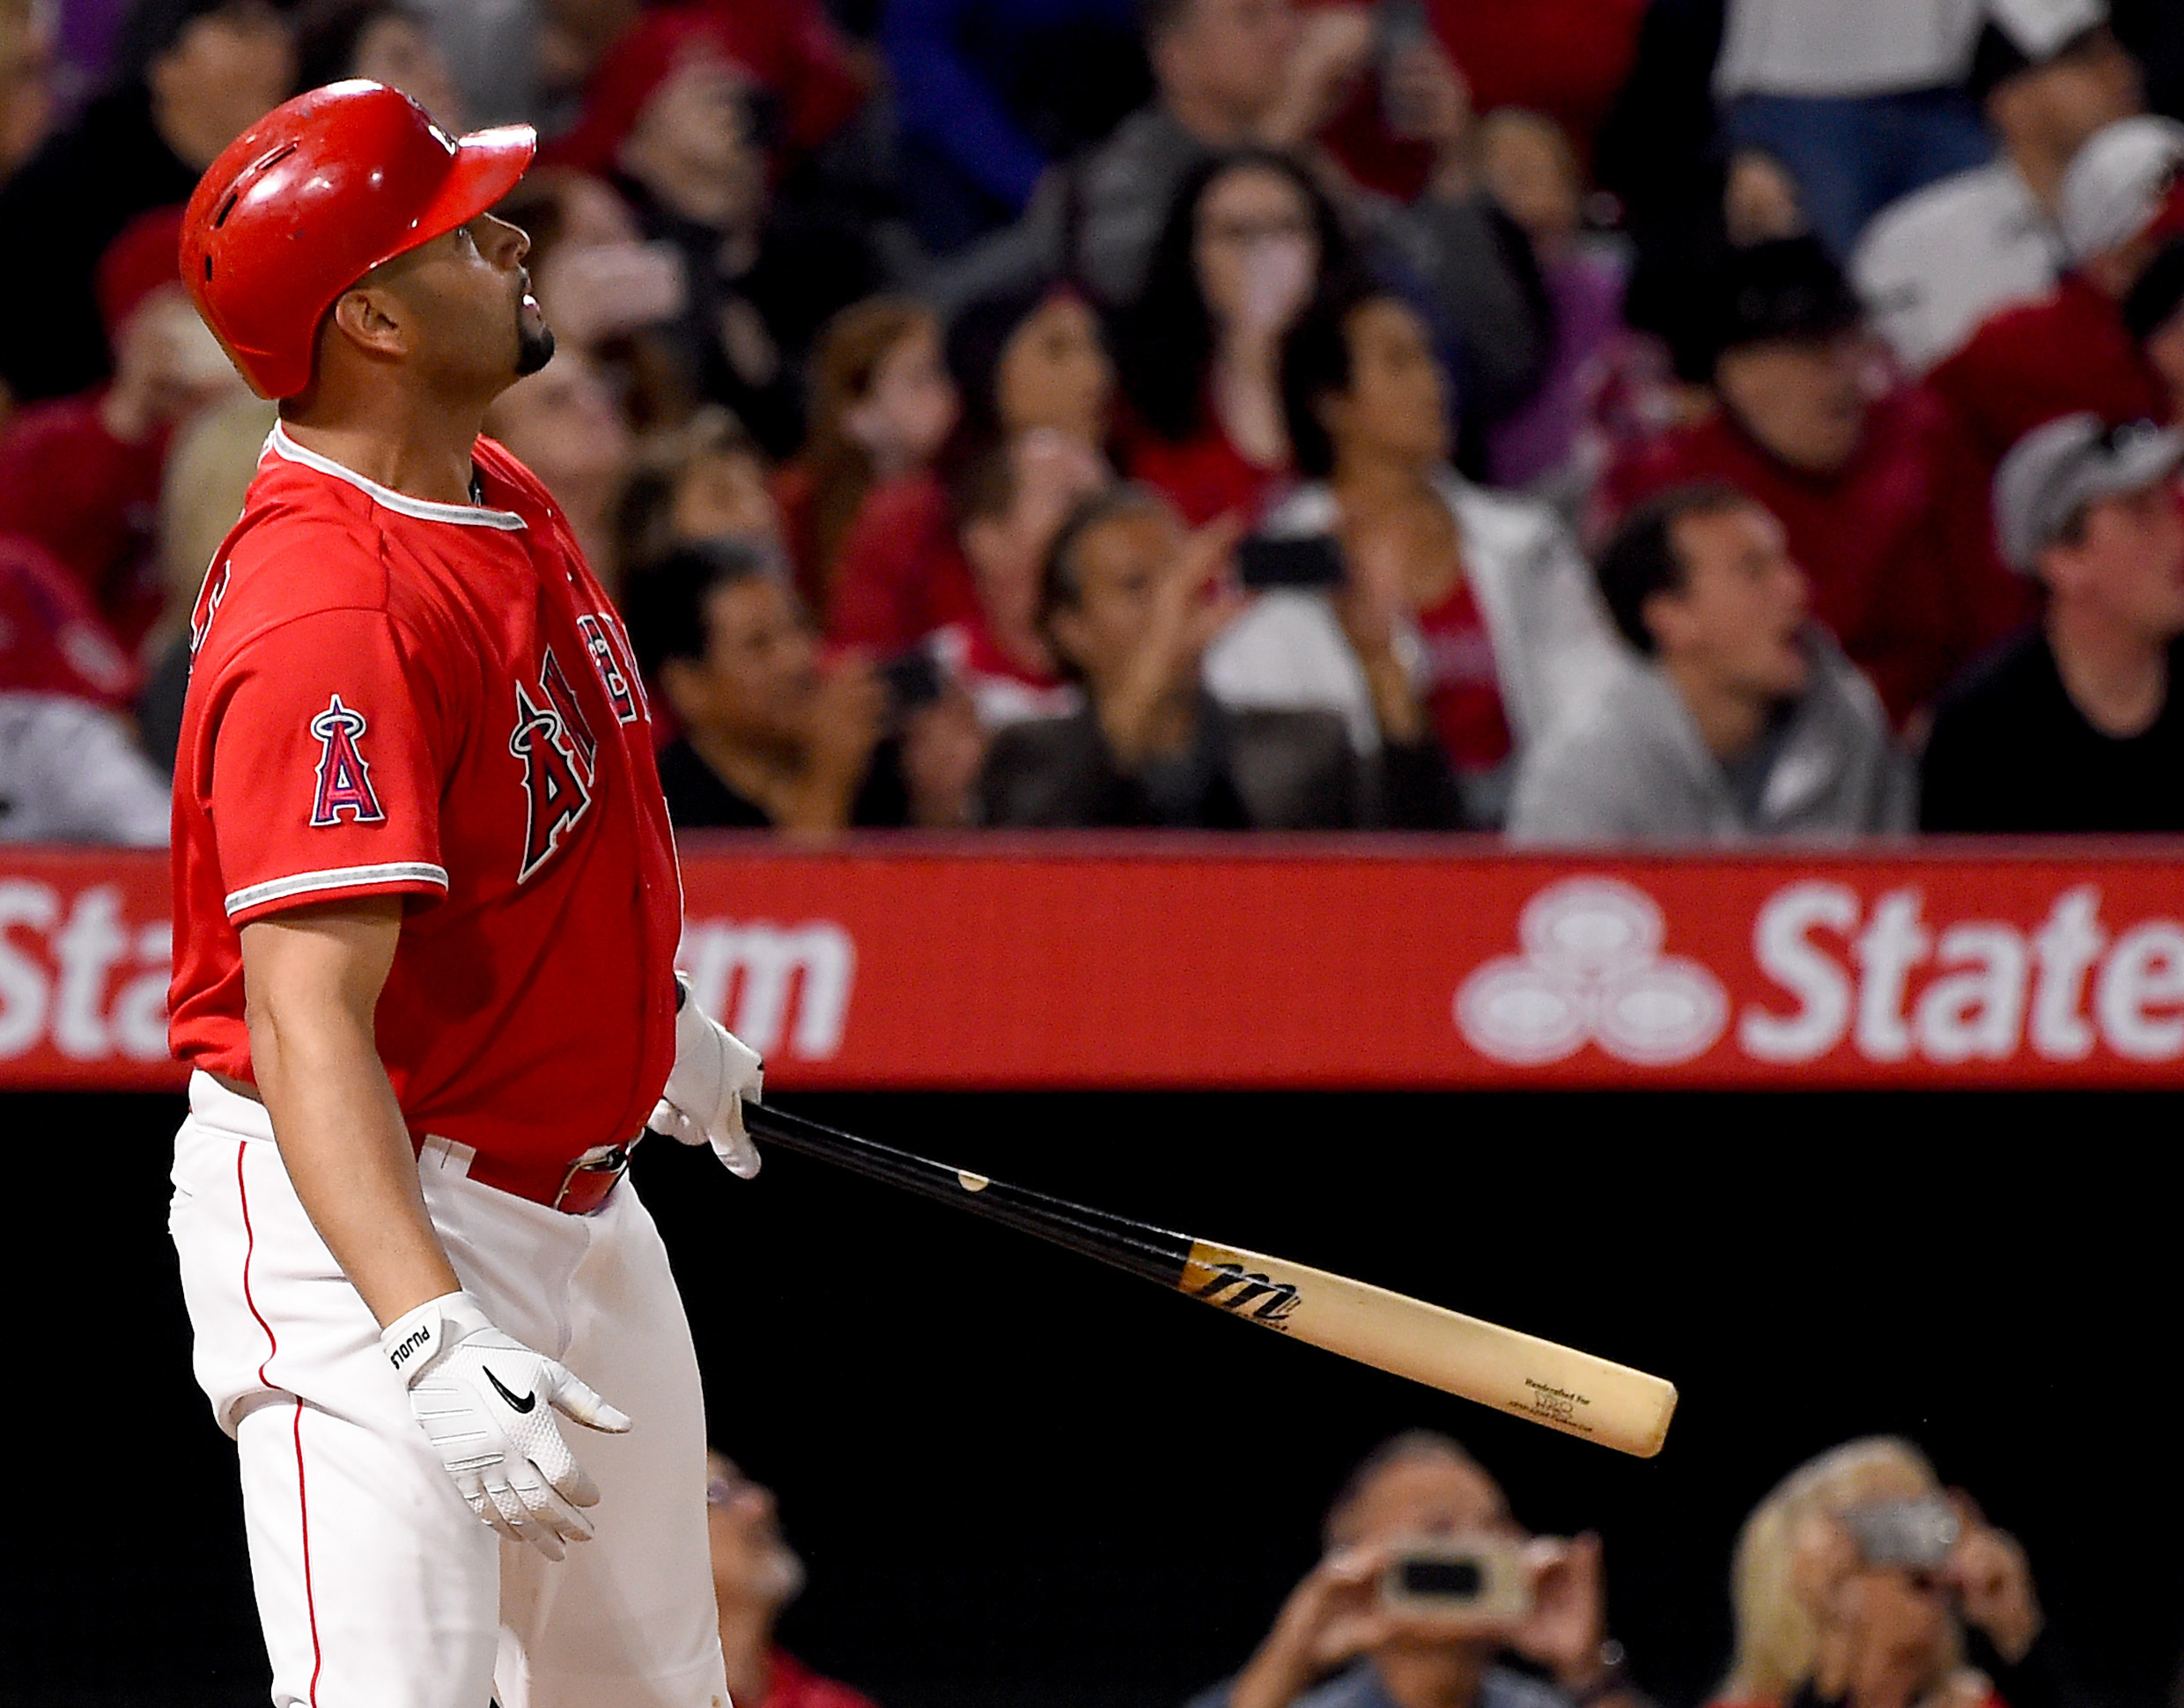 10089492-mlb-minnesota-twins-at-los-angeles-angels